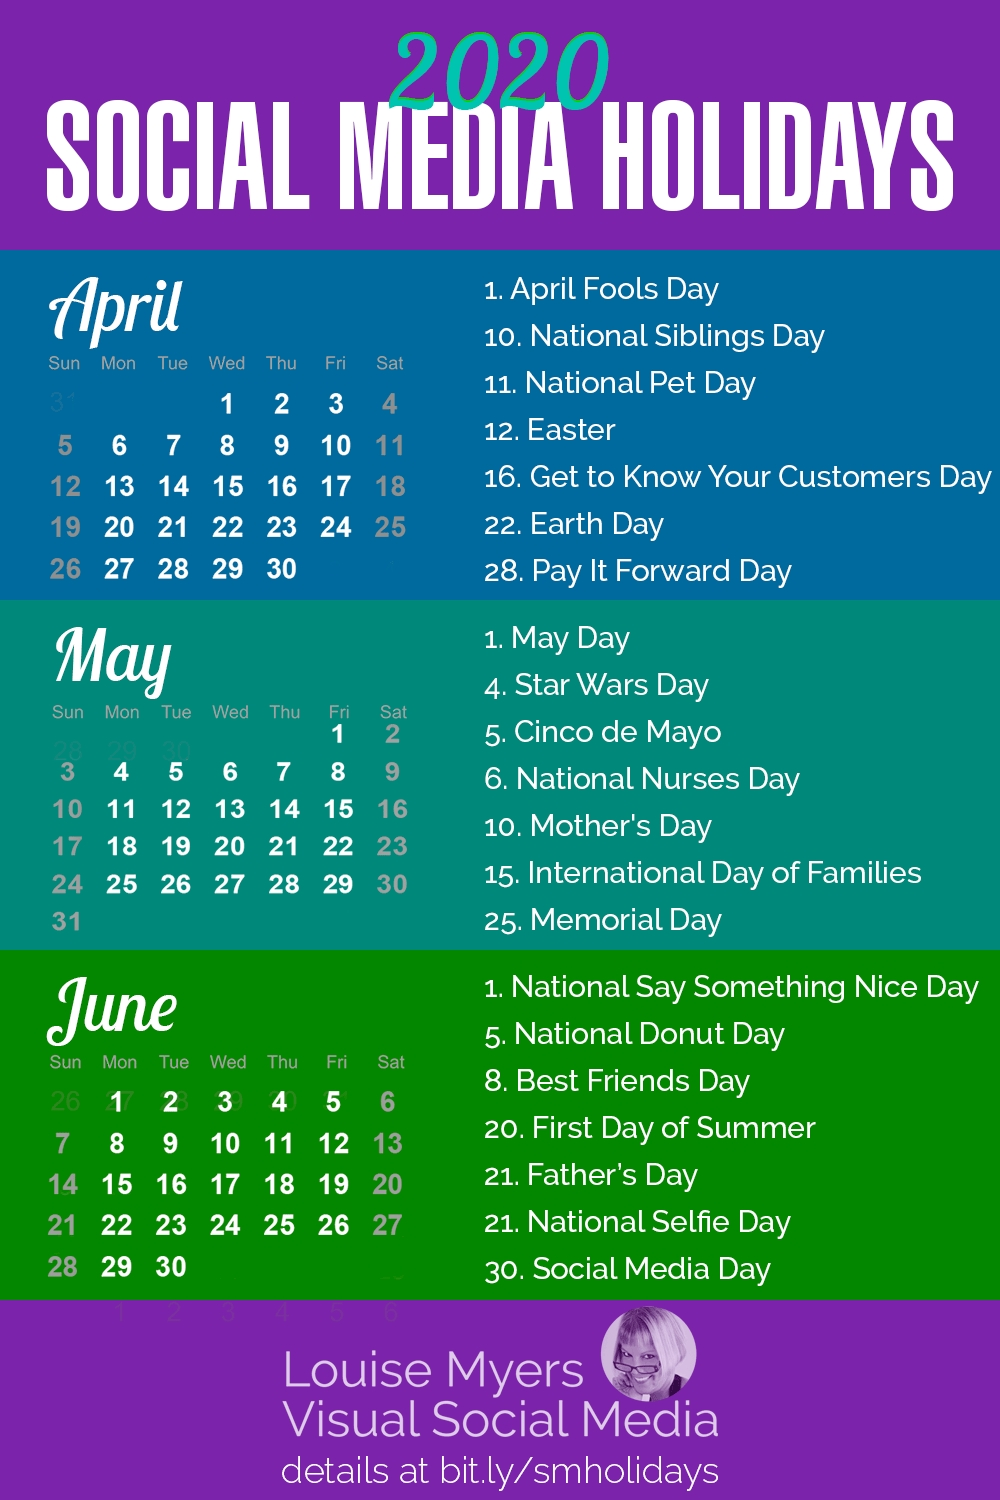 84 Social Media Holidays You Need In 2020: Indispensable! with National Day Calendar 2020 Printable List